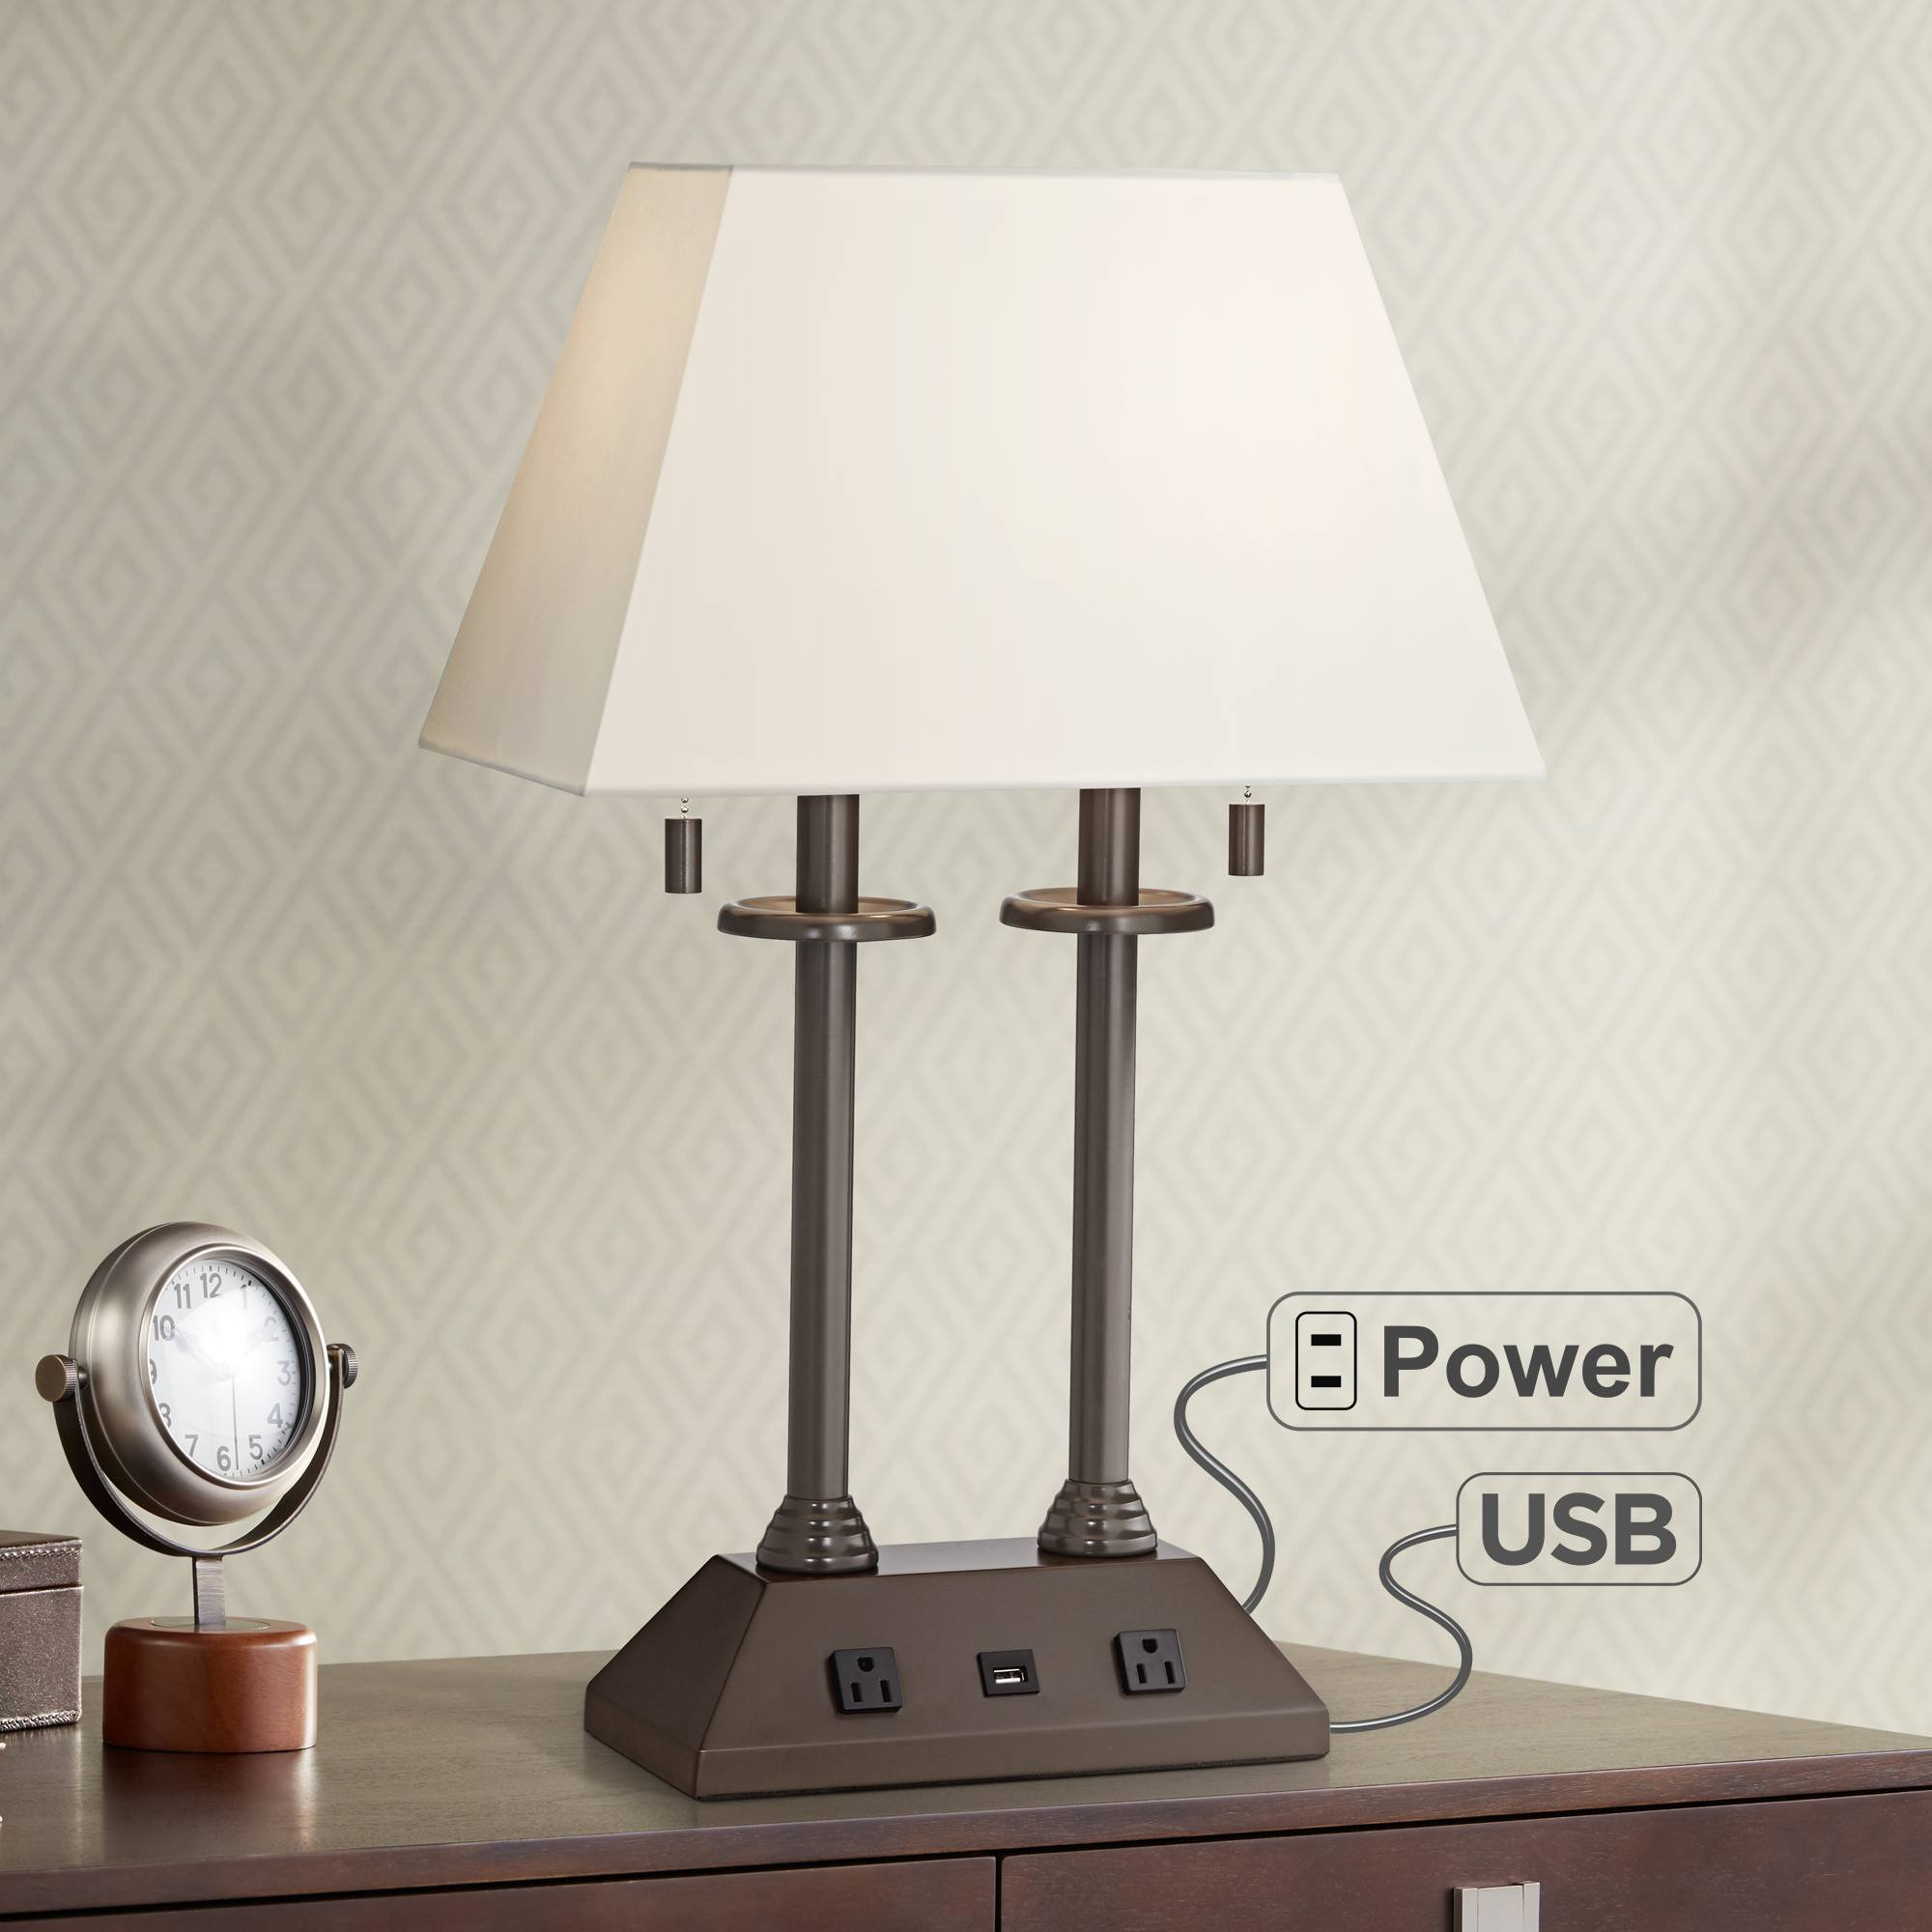 Charlton Traditional Desk Table Lamp with Hotel Style USB and AC Power Outlet in Base Bronze Rectangular Fabric Shade for Bedroom Office - Regency Hill by Regency Hill